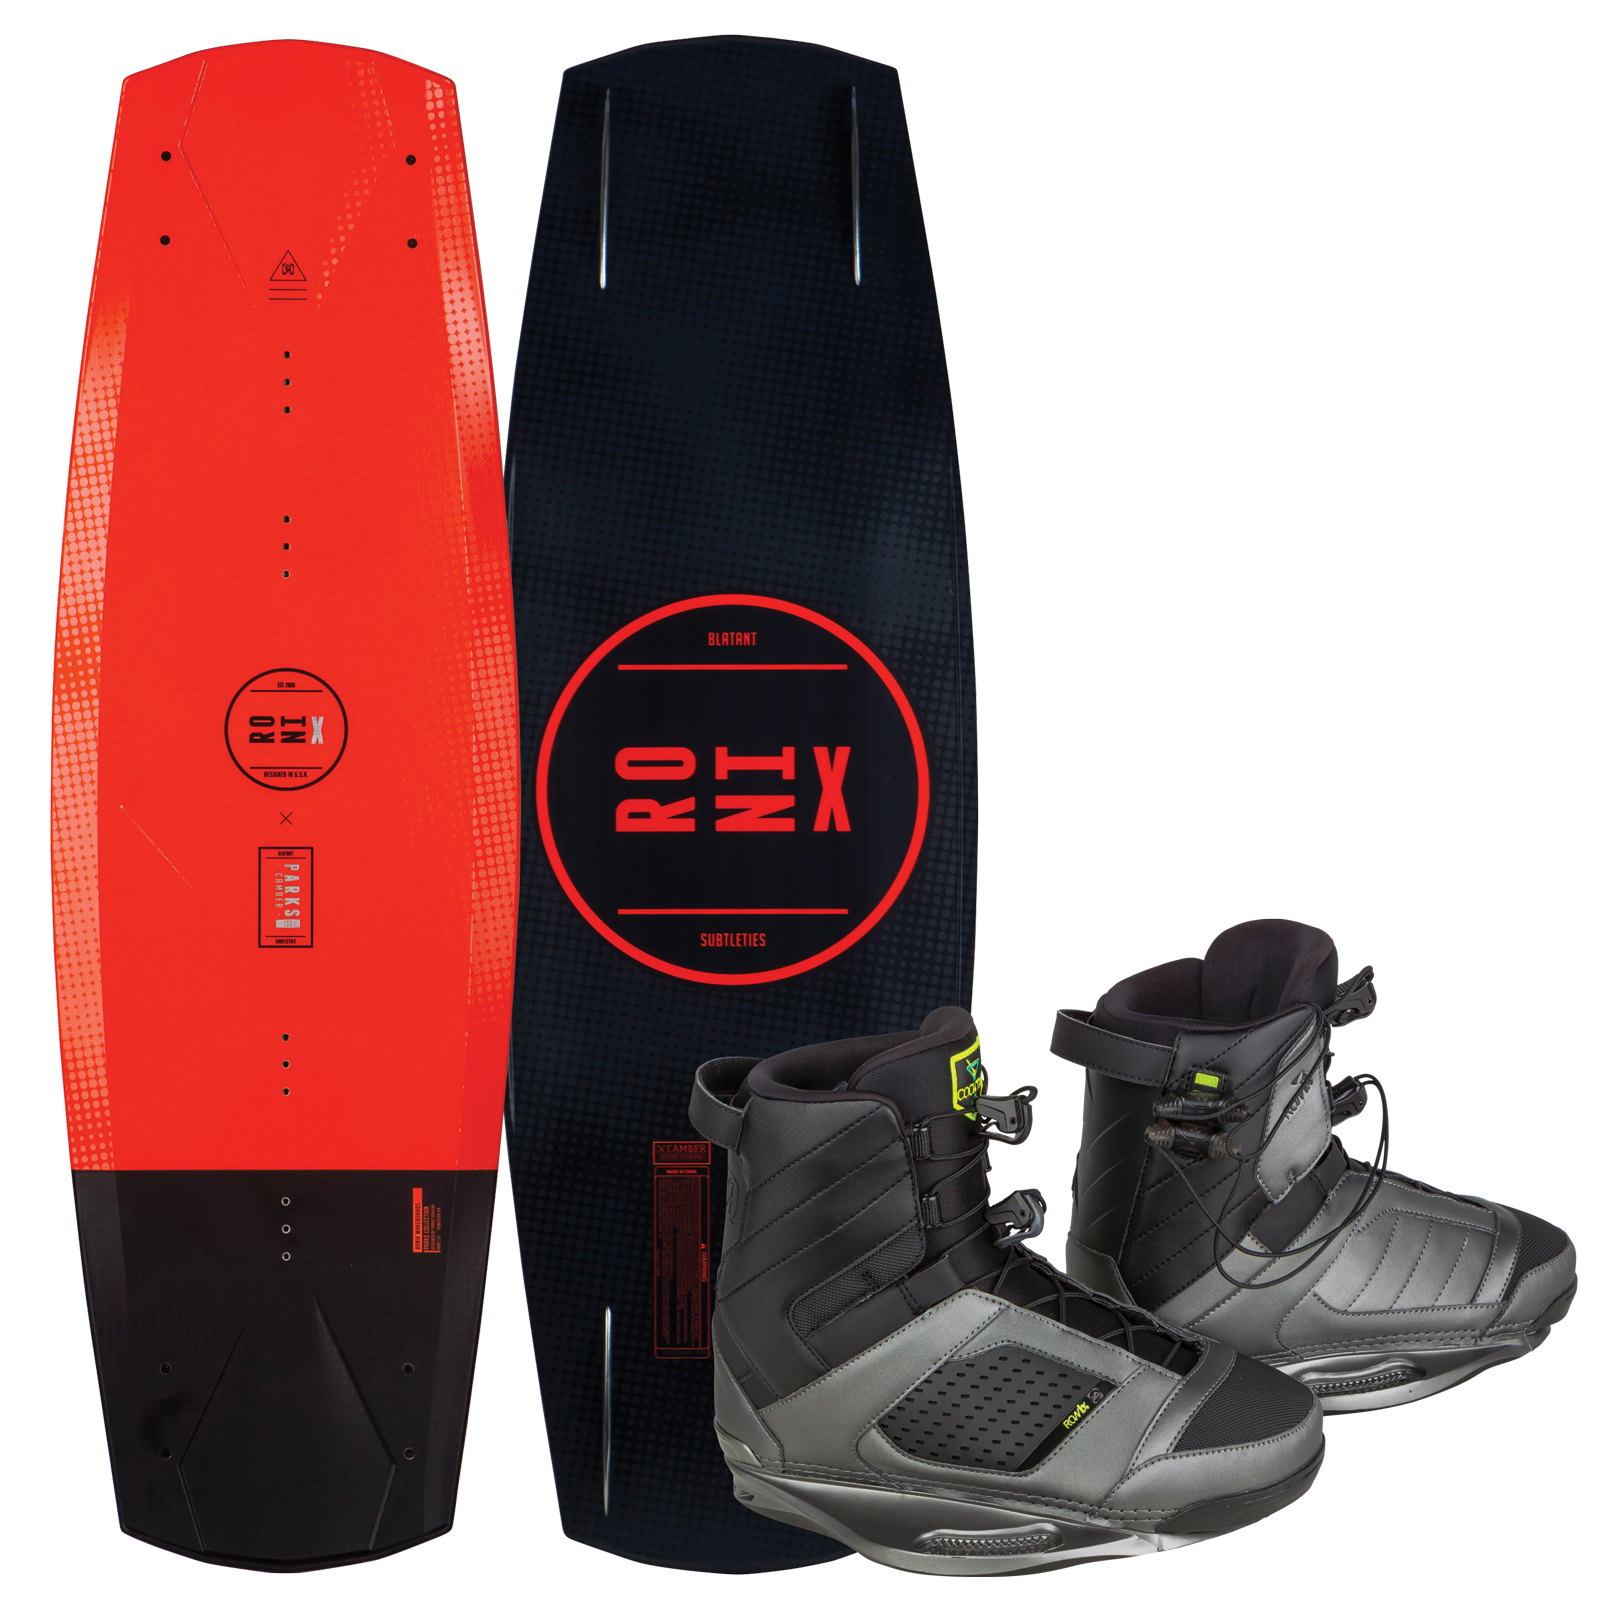 PARKS MODELLO 139 W/ COCKTAIL PACKAGE RONIX 2017